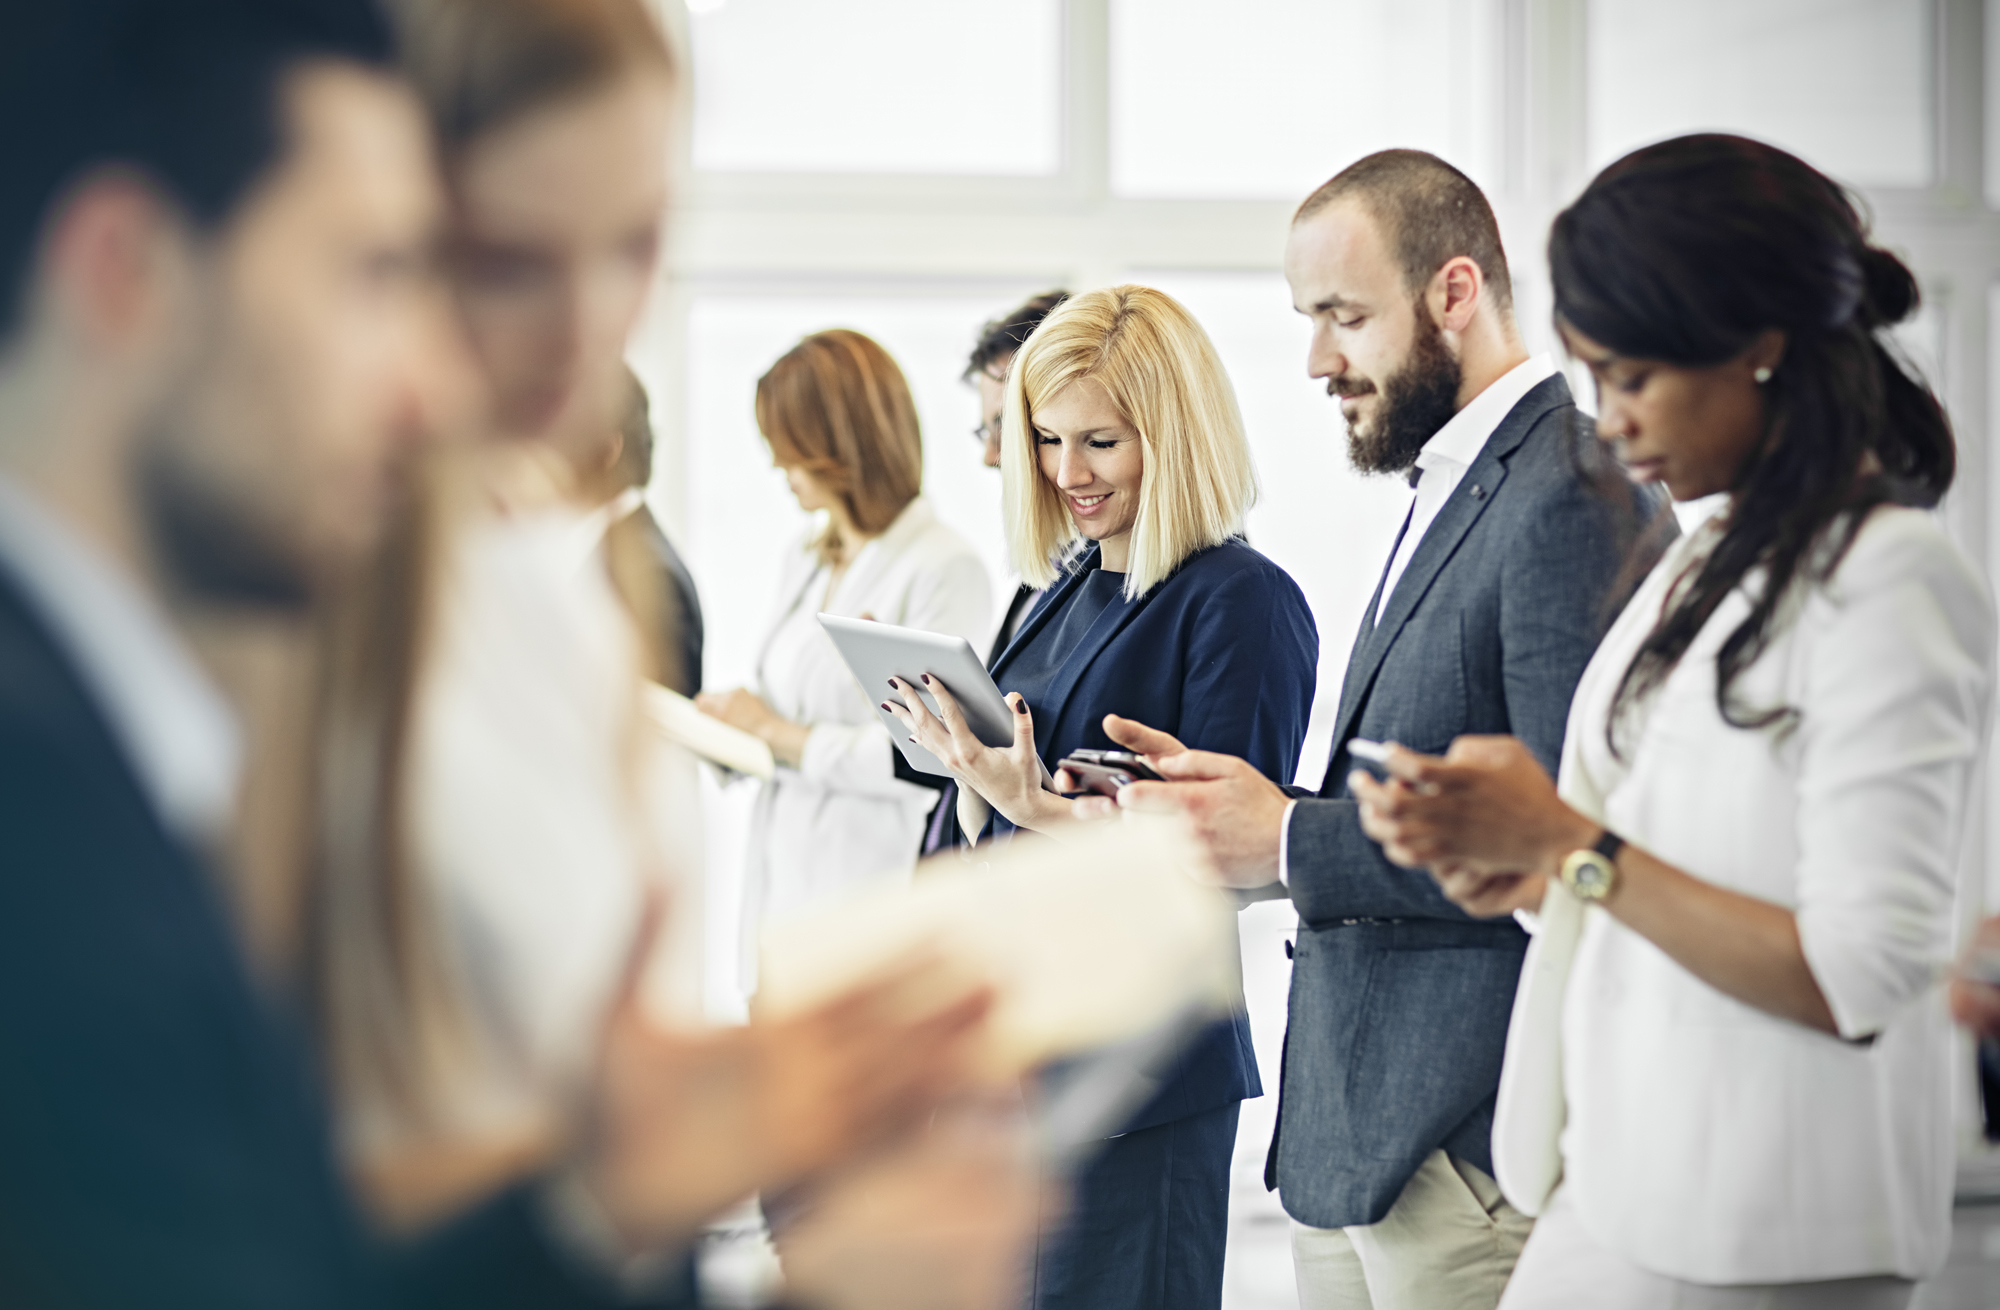 How to use technology effectively at your event - smartphones